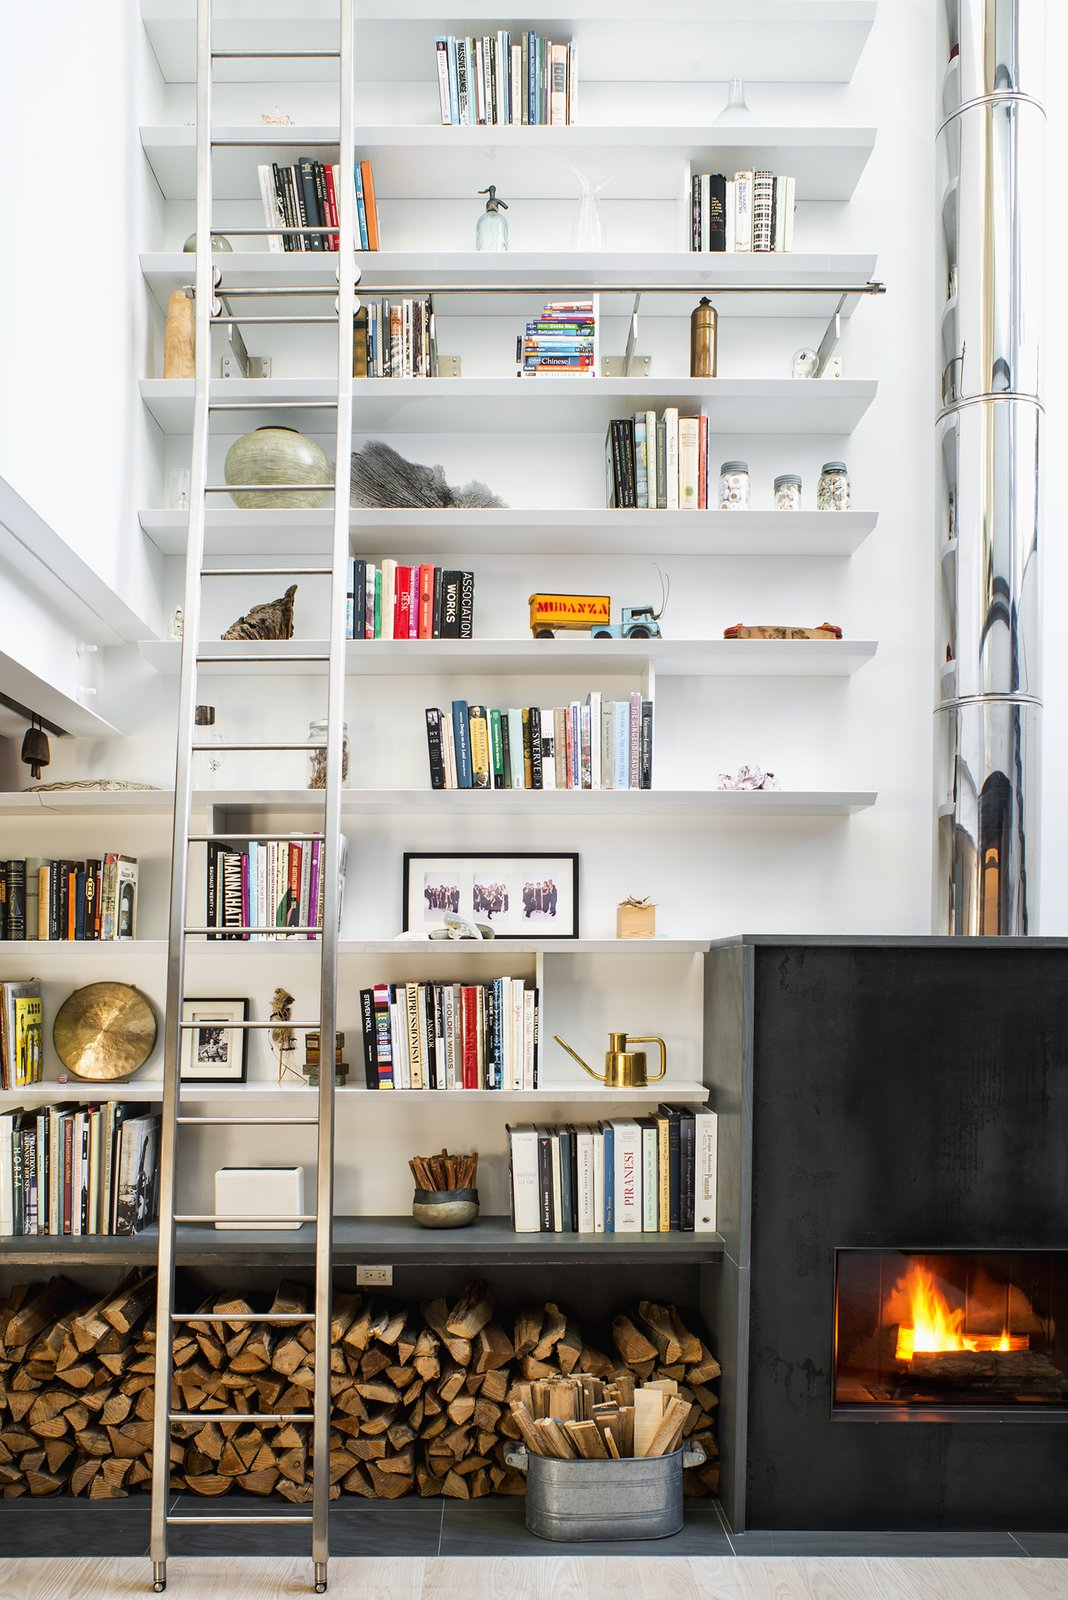 The double-height living room provided the perfect opportunity to combine the homeowners' love of art, literature, and travel, allowing them to fill the 24-foot shelves with books and collected artifacts. A wood-burning sustainable fireplace by Wittus adds a broad stroke of warmth. Tagged: Living Room, Standard Layout Fireplace, Wood Burning Fireplace, Bookcase, Shelves, and Light Hardwood Floor.  Photo 5 of 10 in A Rooftop Addition on a 19th-Century Building Suits a Growing Family's Needs